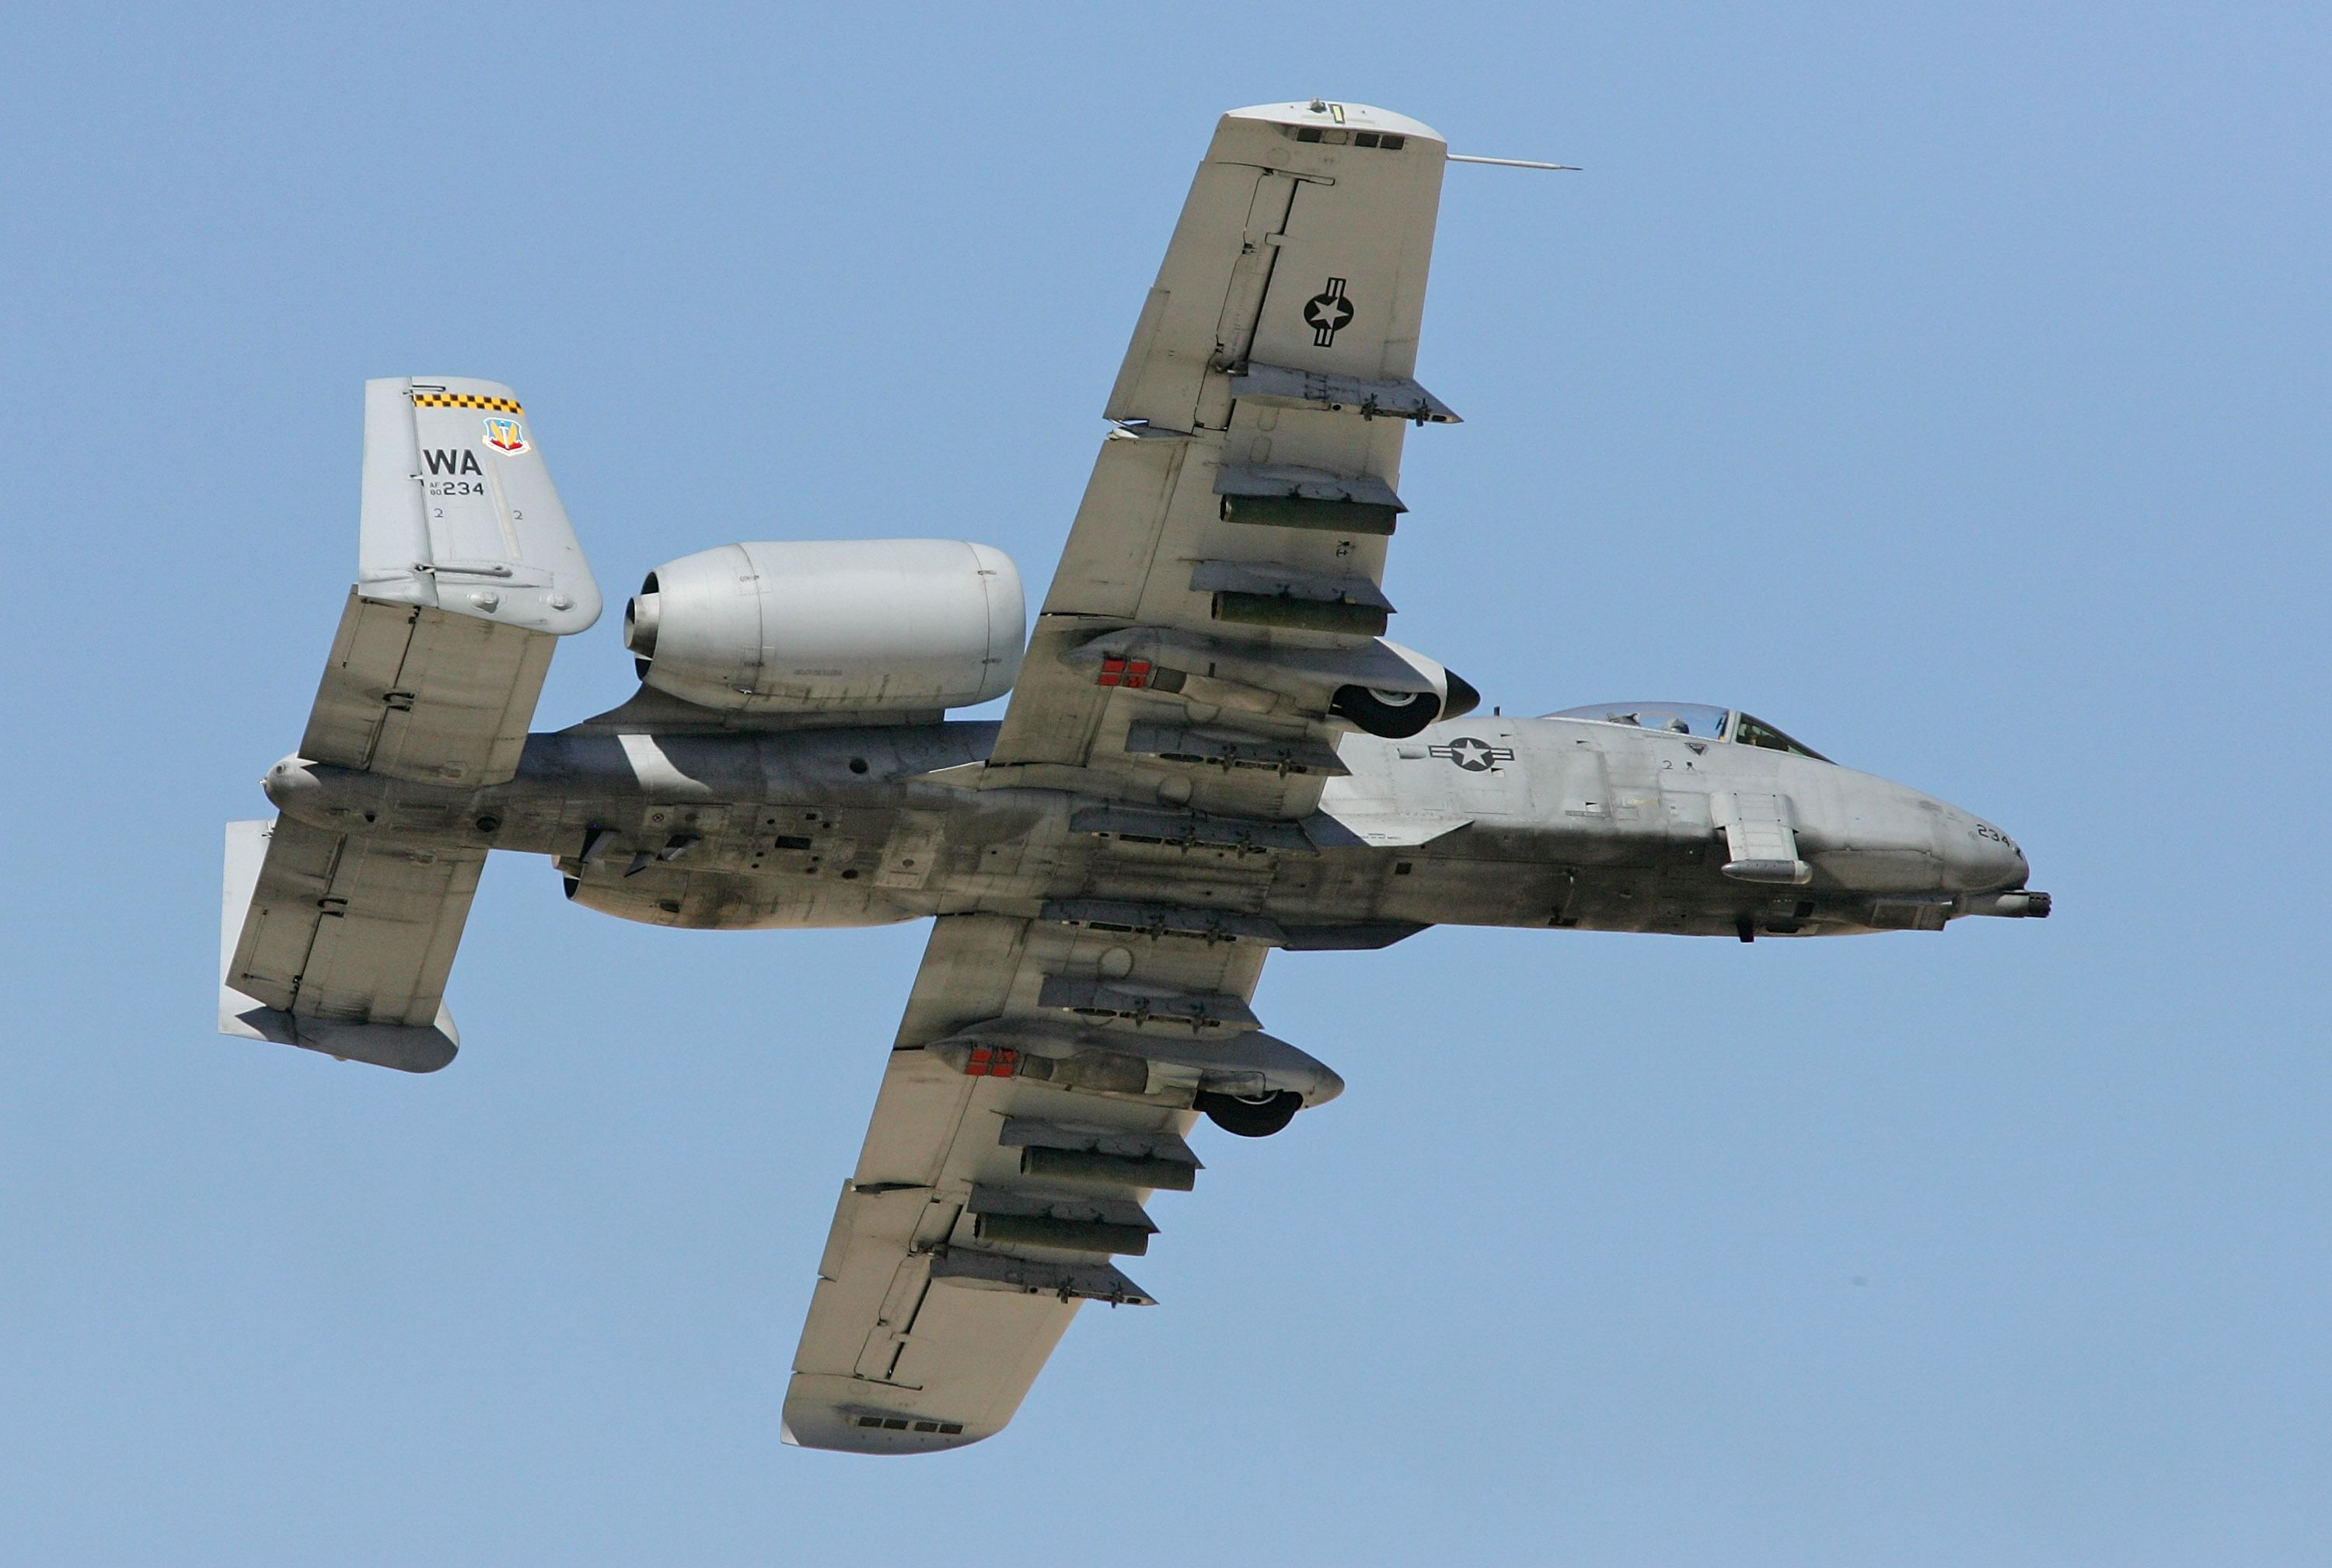 The A-10 Lives To Fly Again